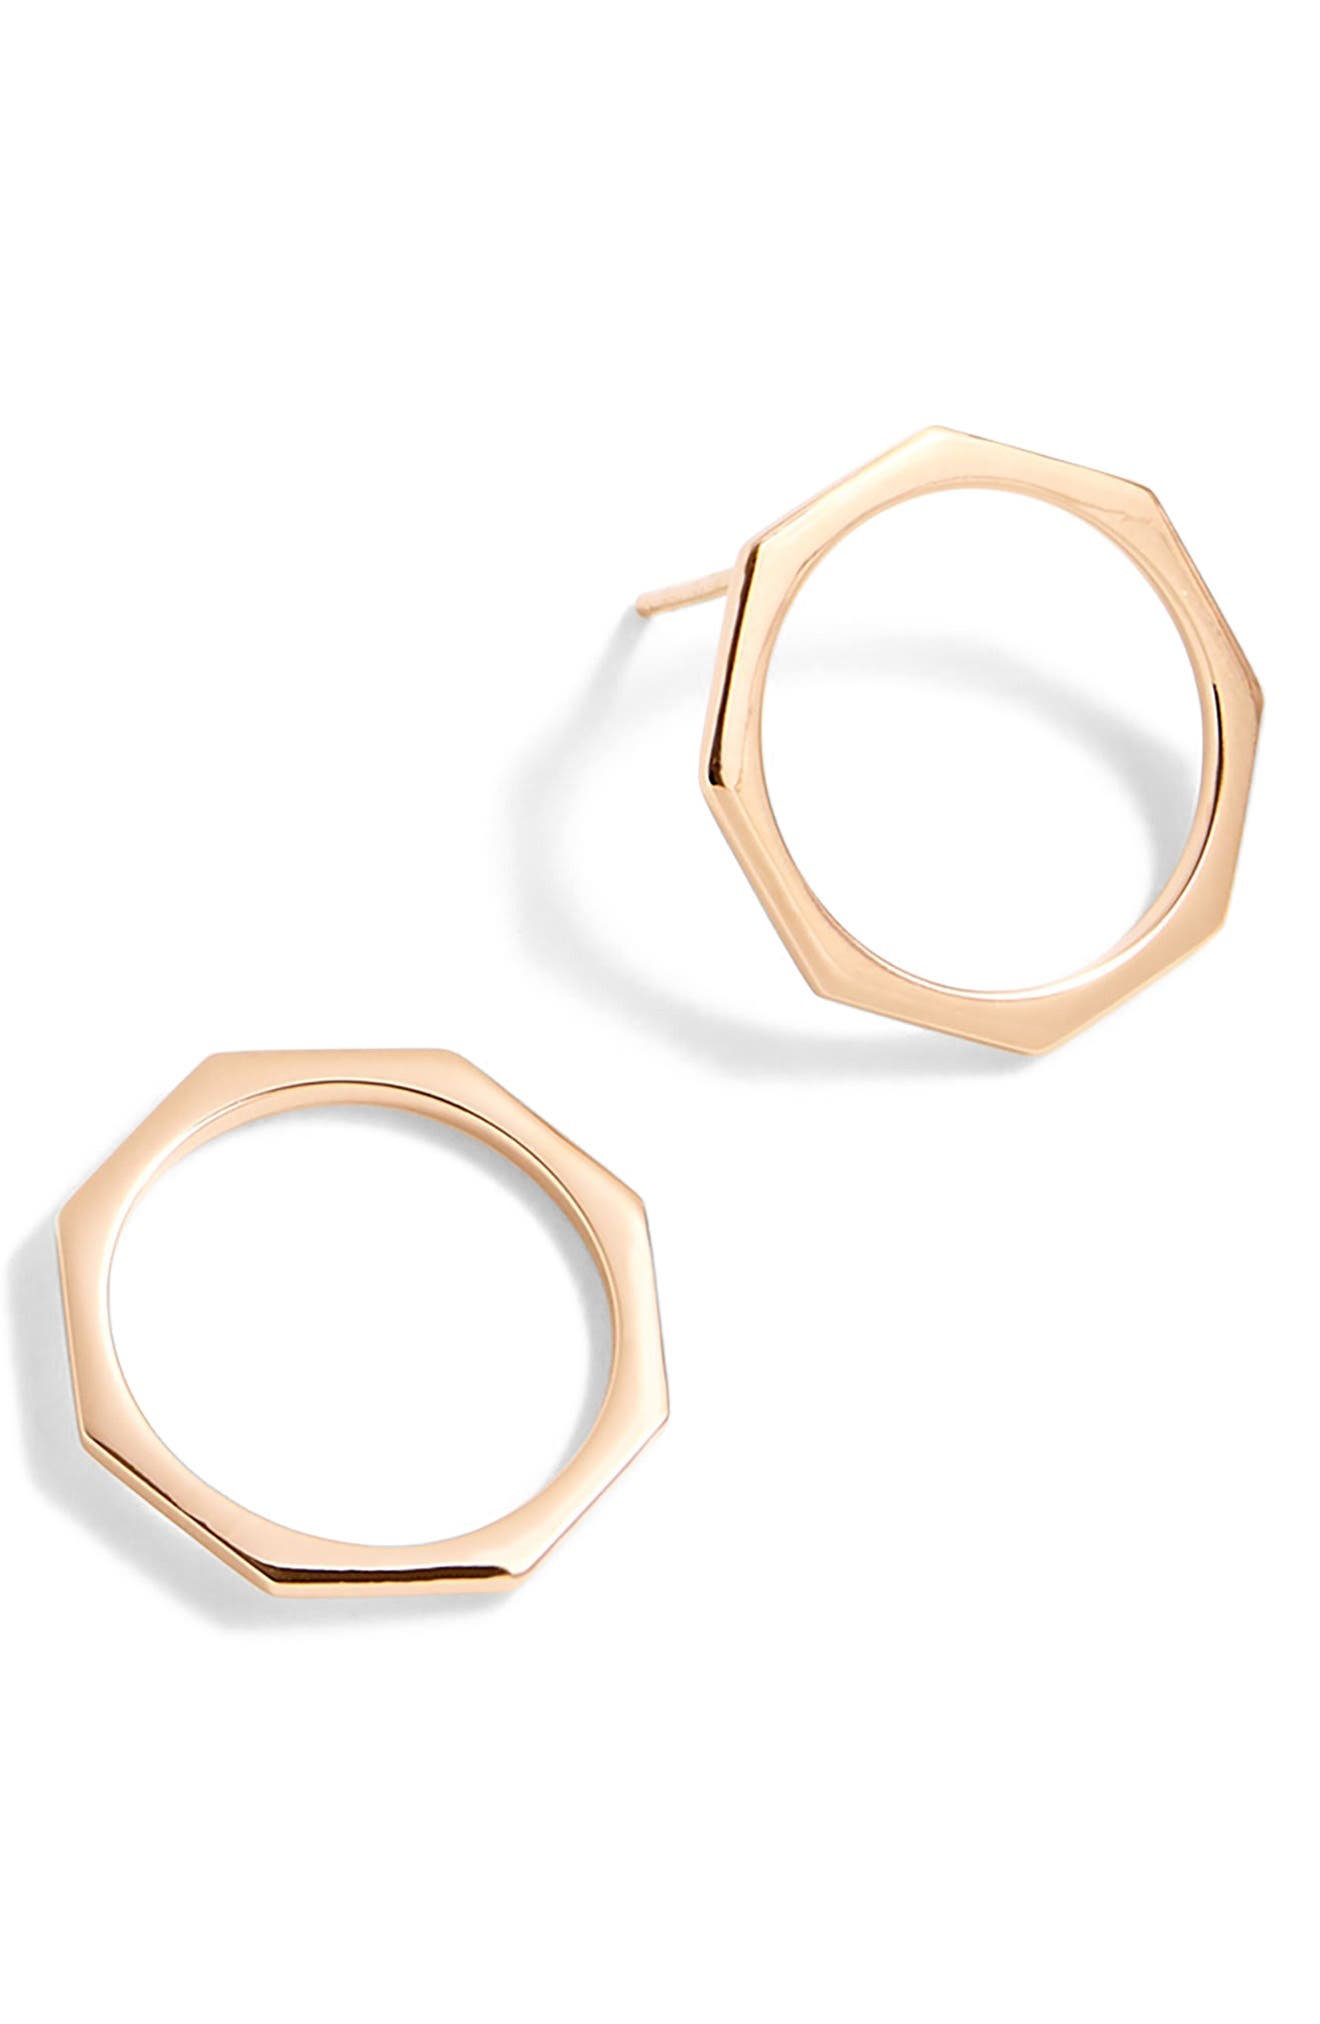 Delicate Octagon Earrings,                         Main,                         color, 650